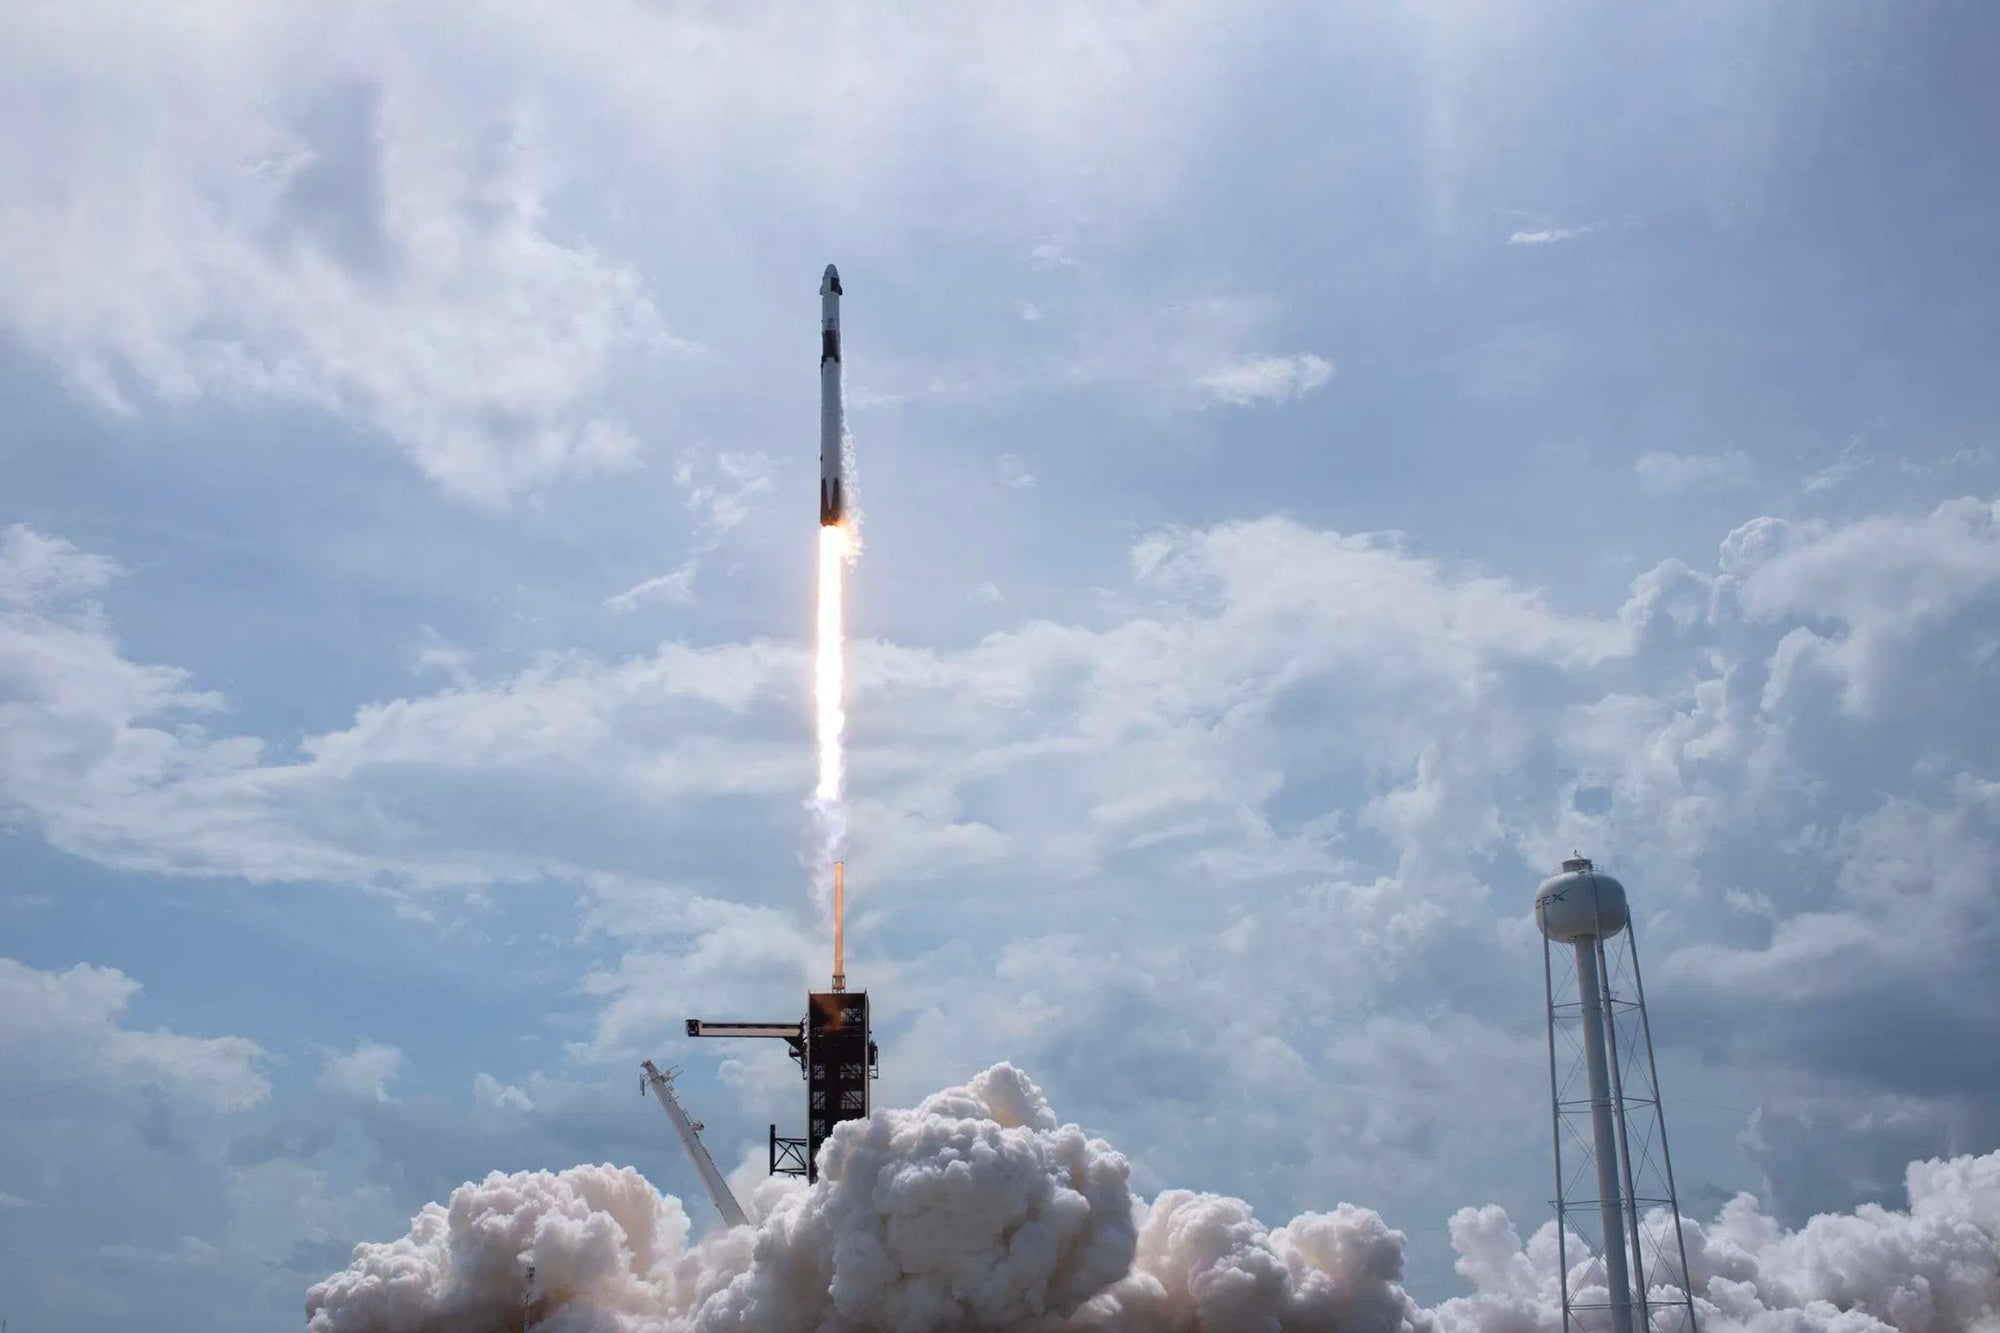 NASA Astronauts Successfully Dock SpaceX Crew Dragon at ISS